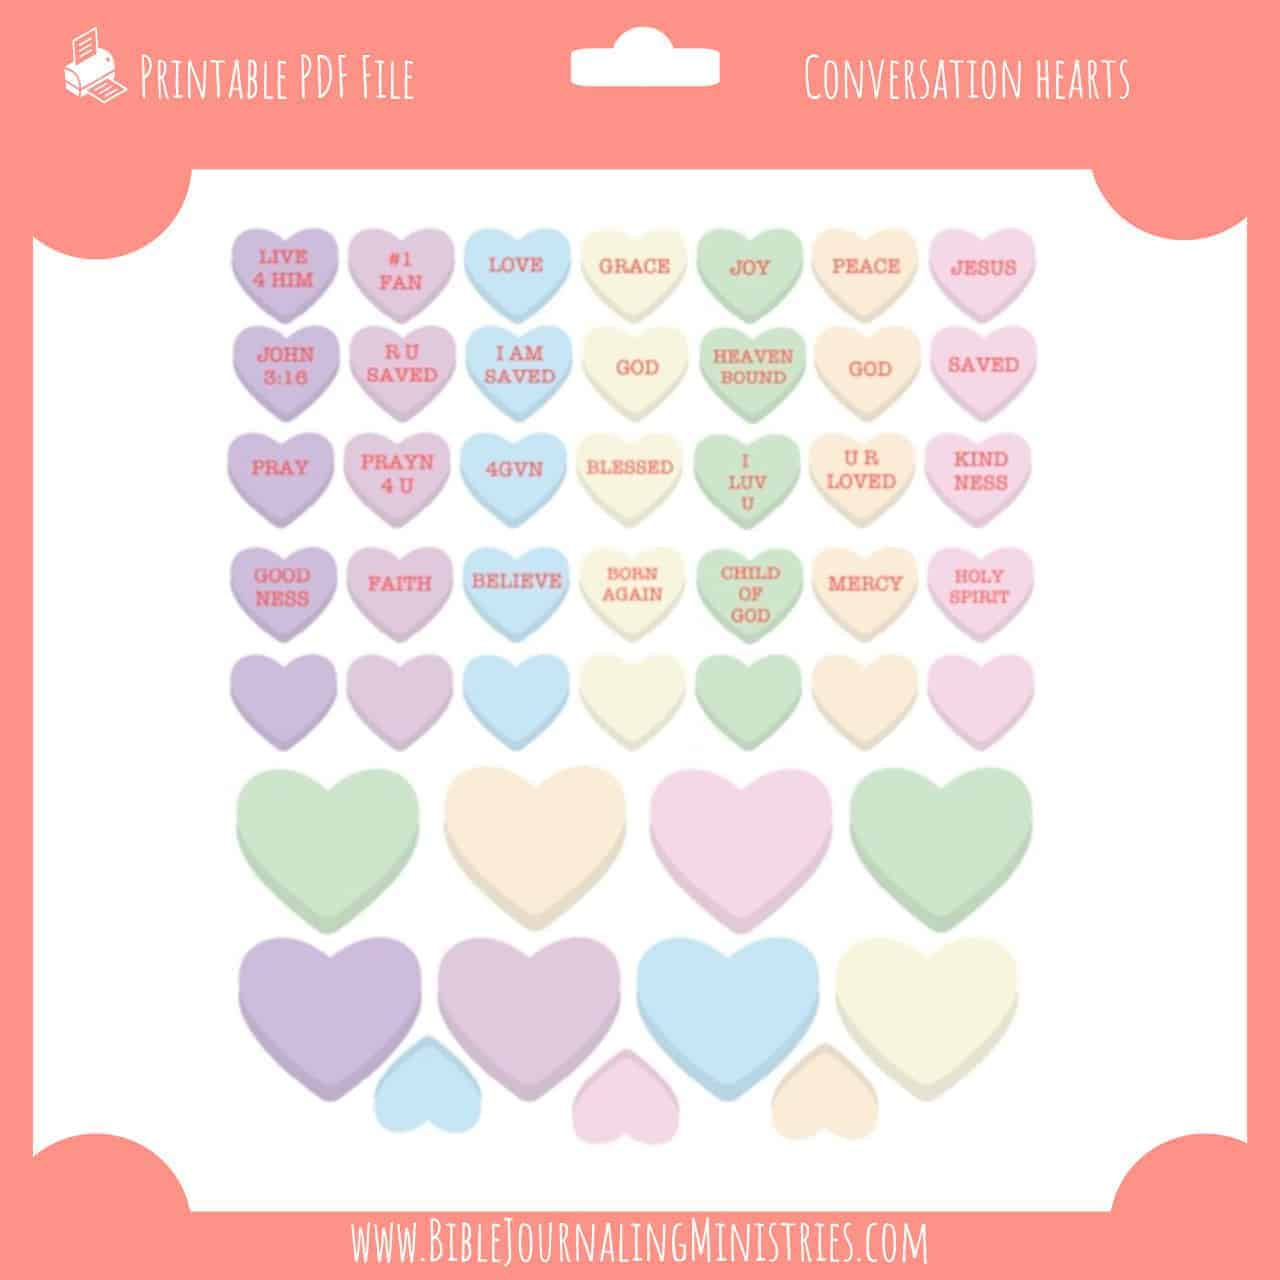 photograph relating to Printable Conversation Hearts referred to as Interaction Hearts Stickers - Bible Journaling Electronic Package